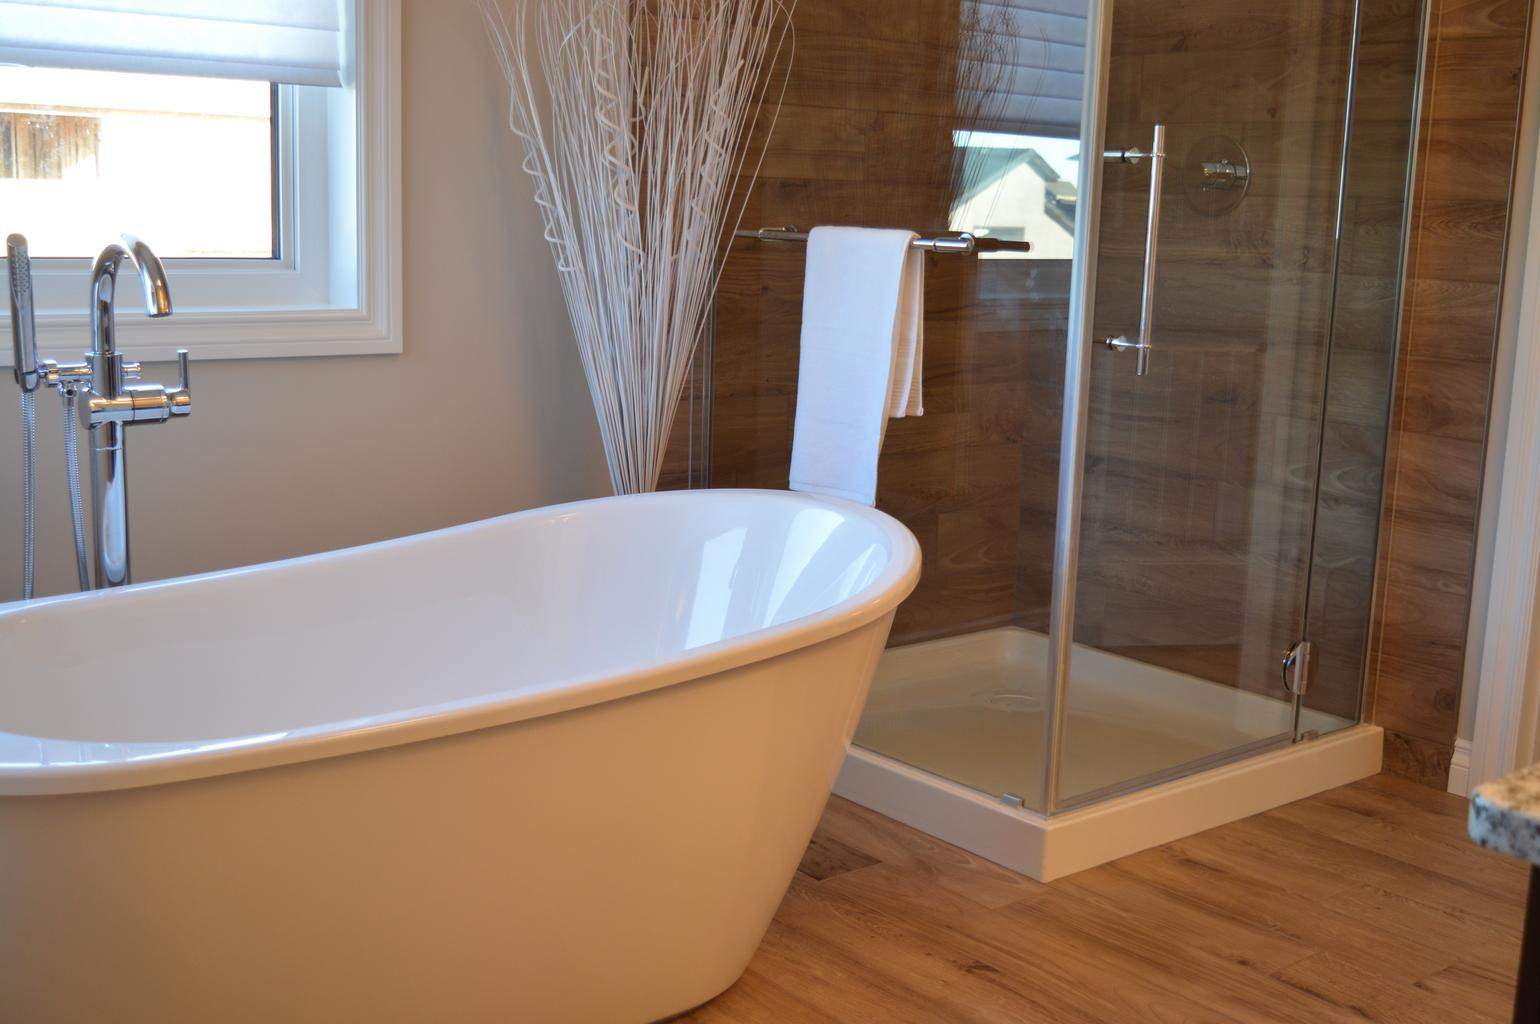 image - From Selection to Installation Your Guide to Bathtub Replacement